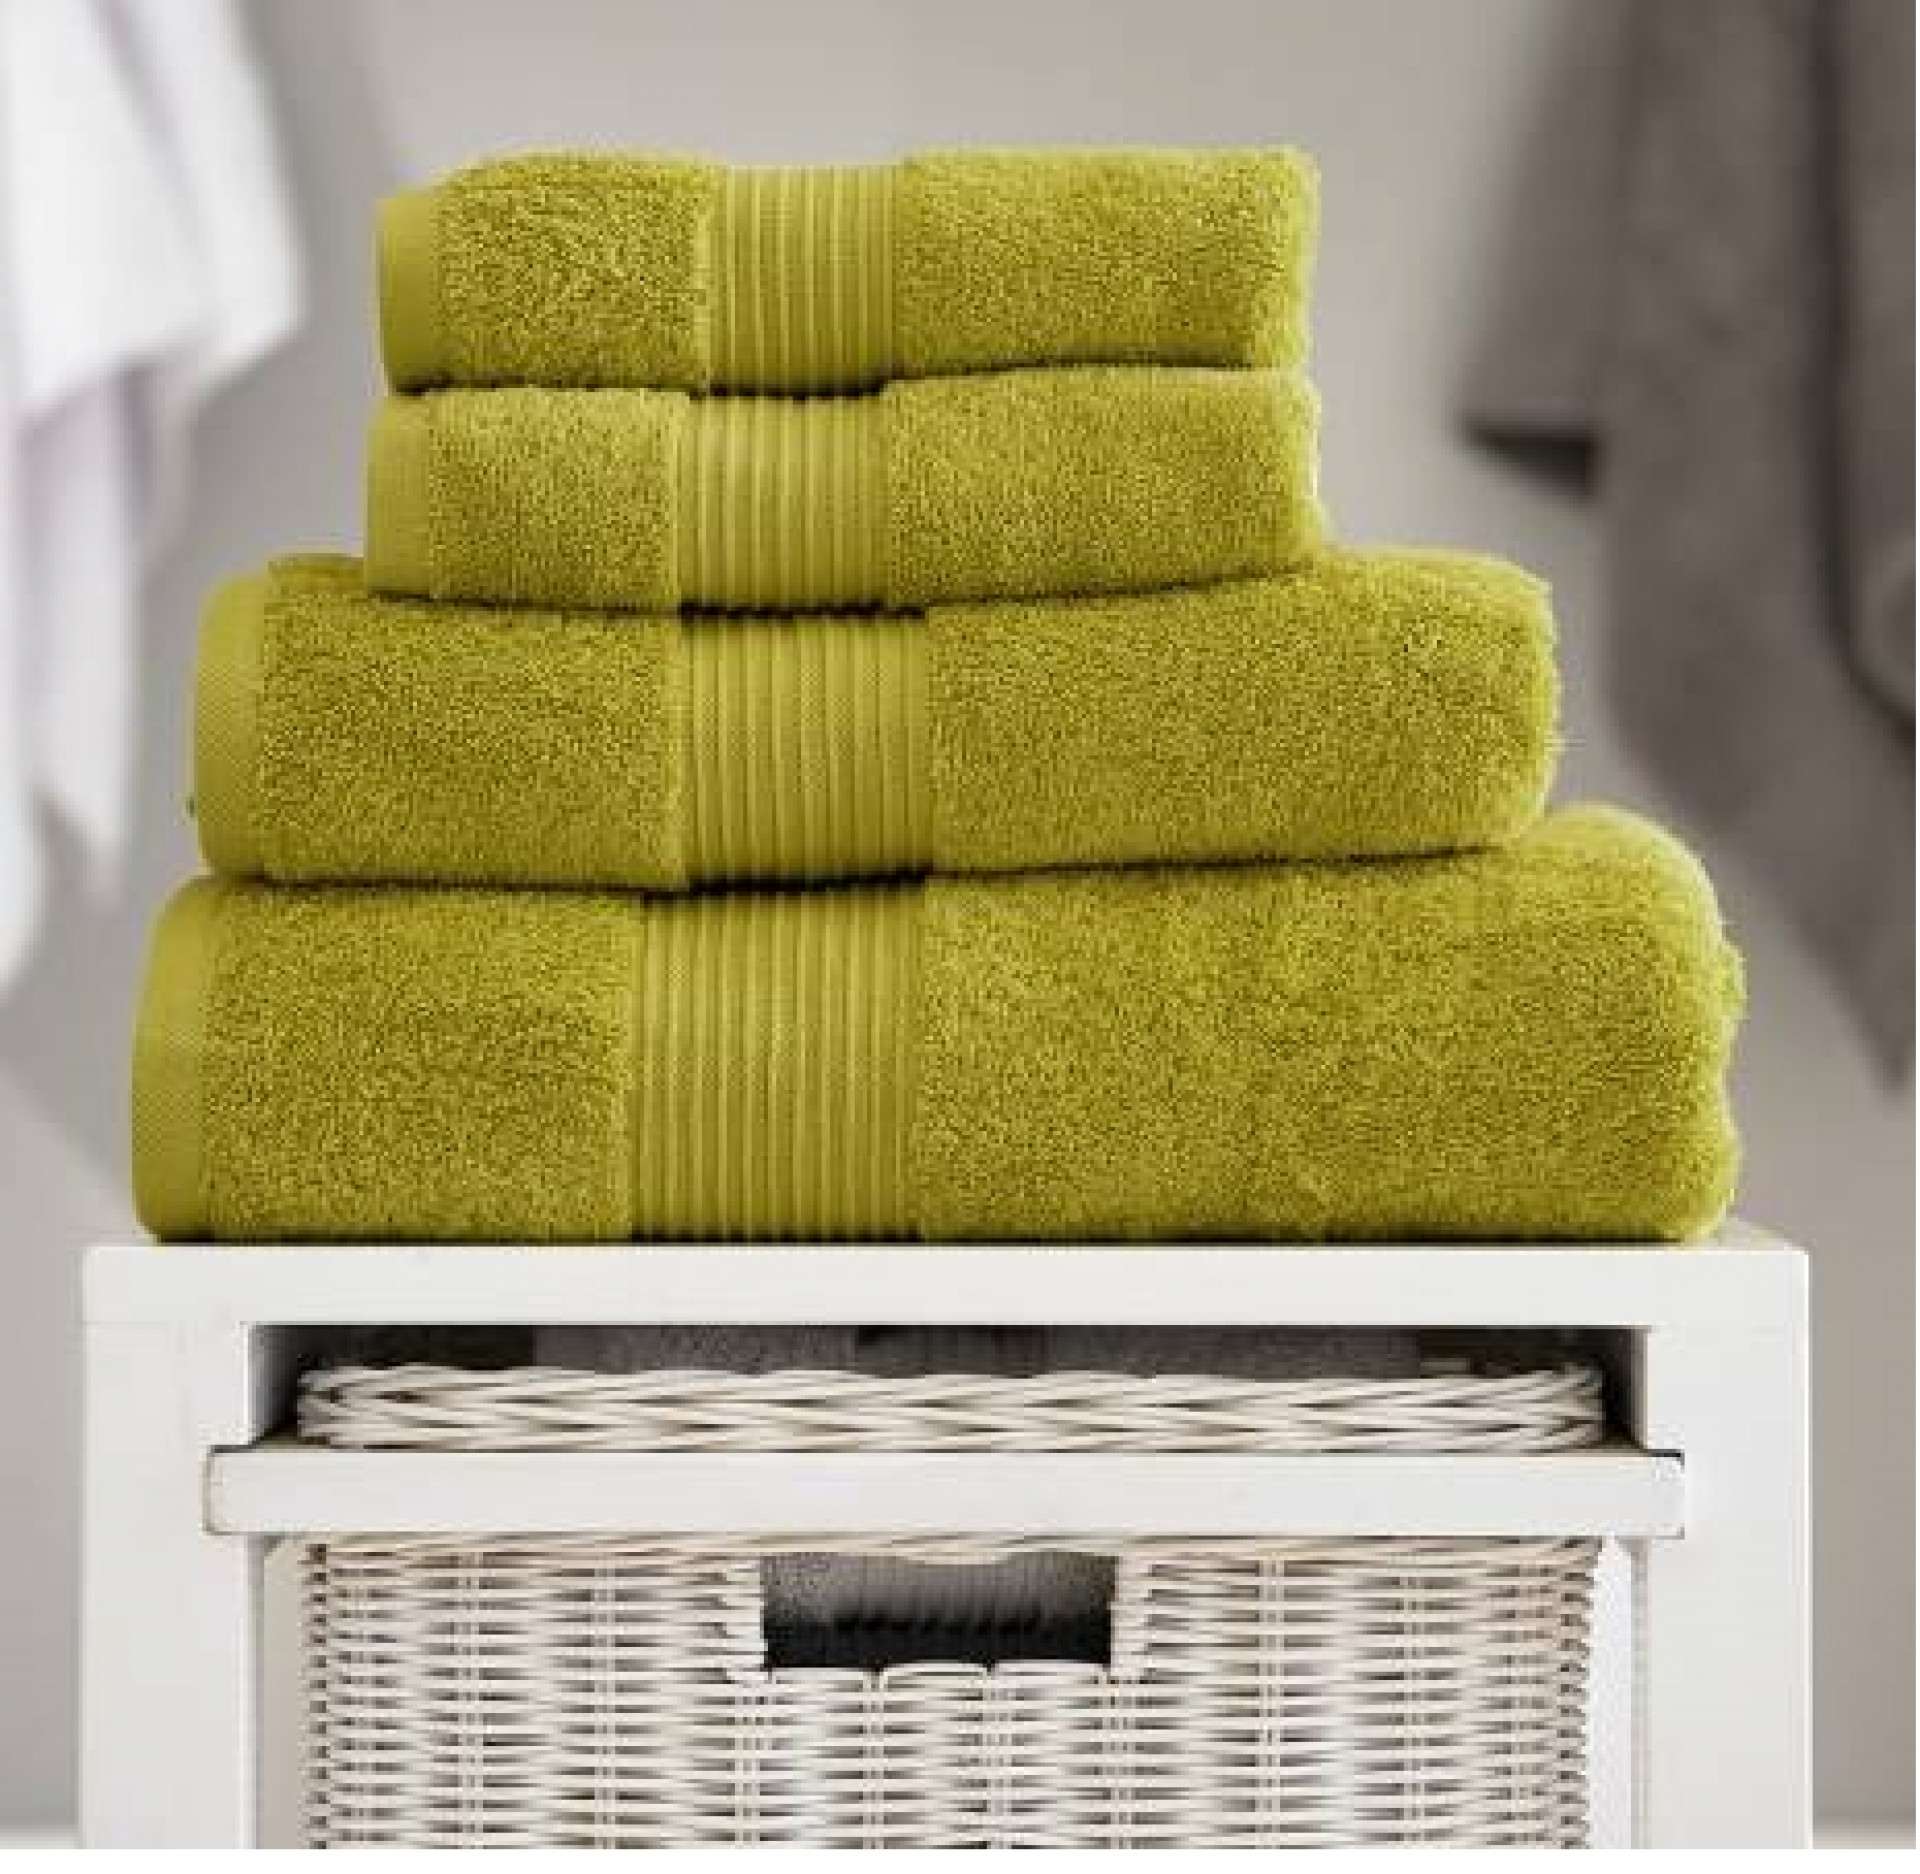 DEYONGS Bliss Pair of Hand Towels, Olive